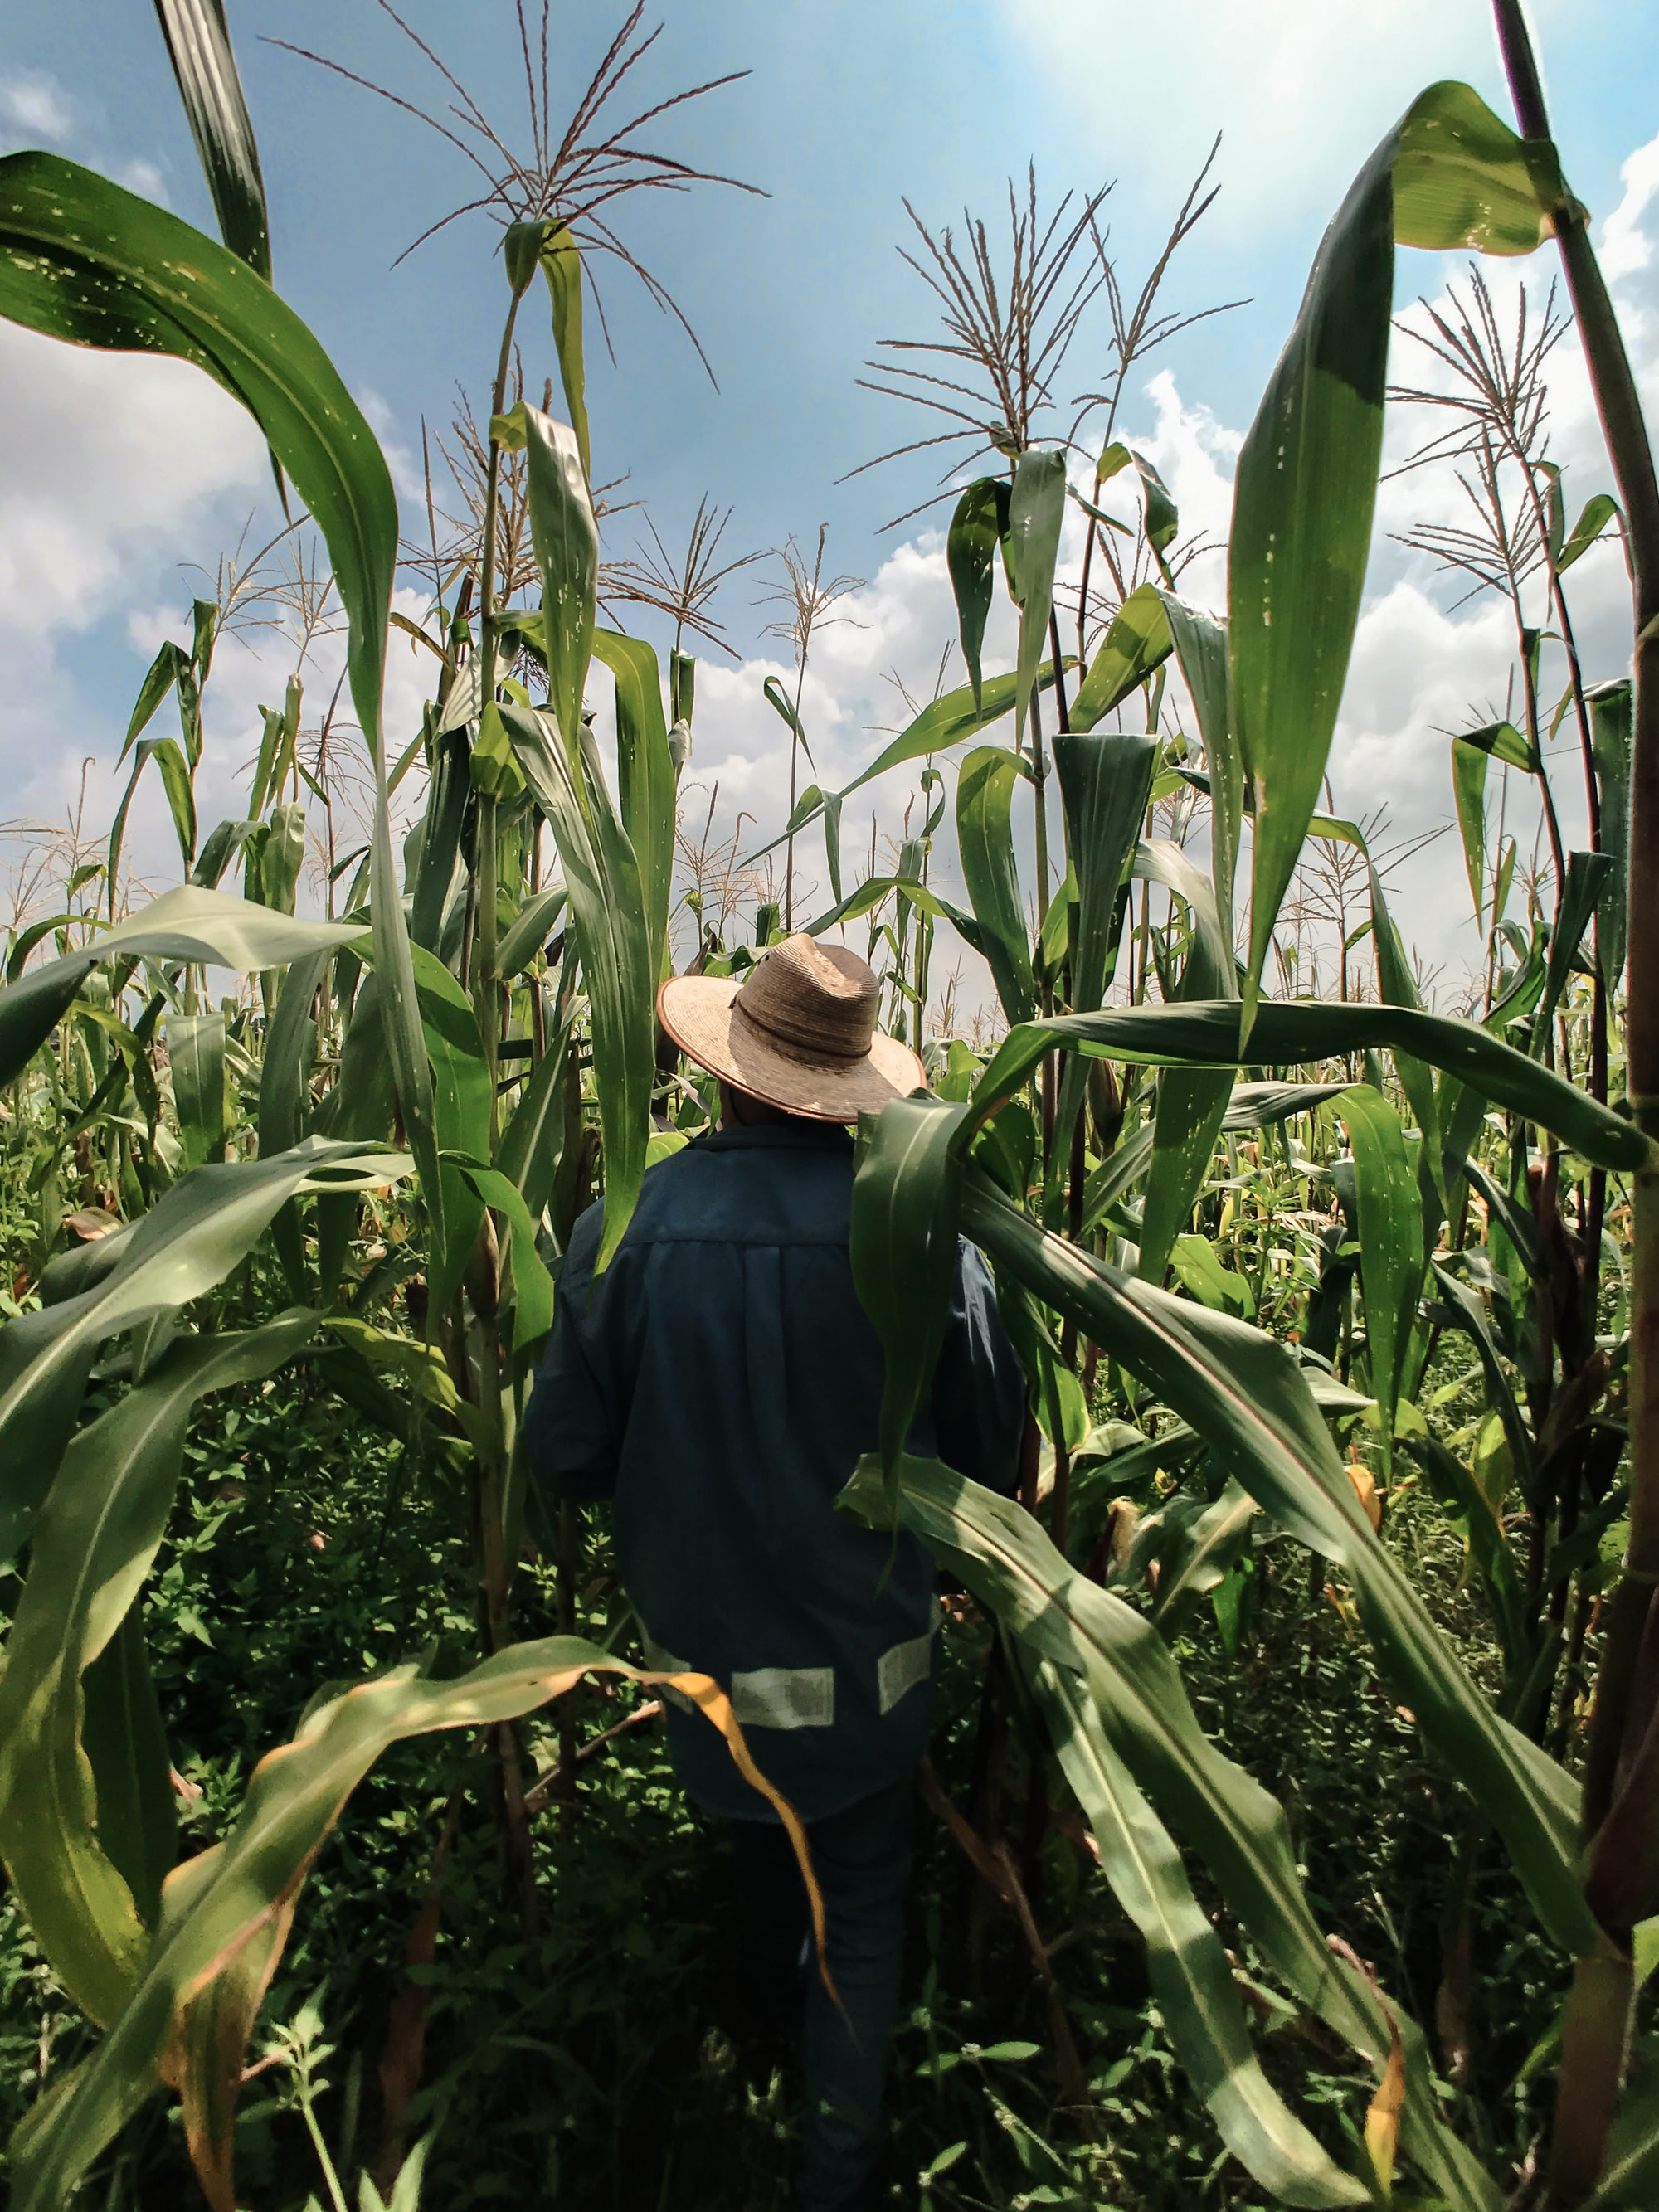 How to Create Better Post-COVID Food Systems: 4 Action Steps For Environmentalists